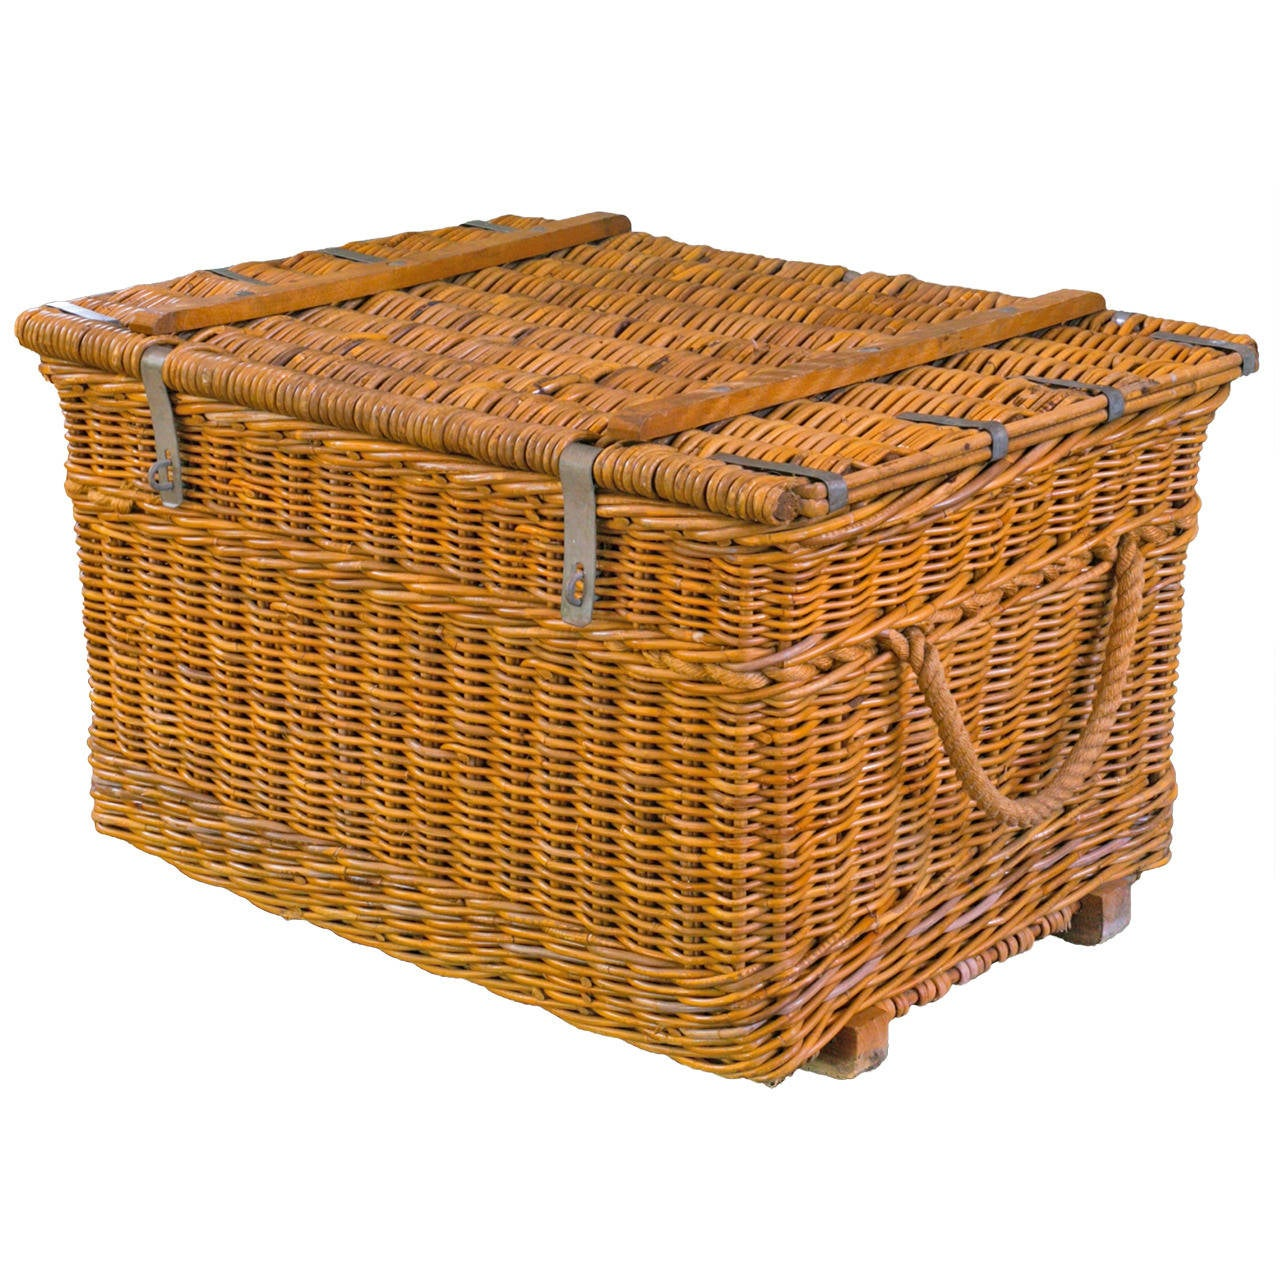 Wicker Baskets With Handles And Lid : Wicker basket with lid and handle long